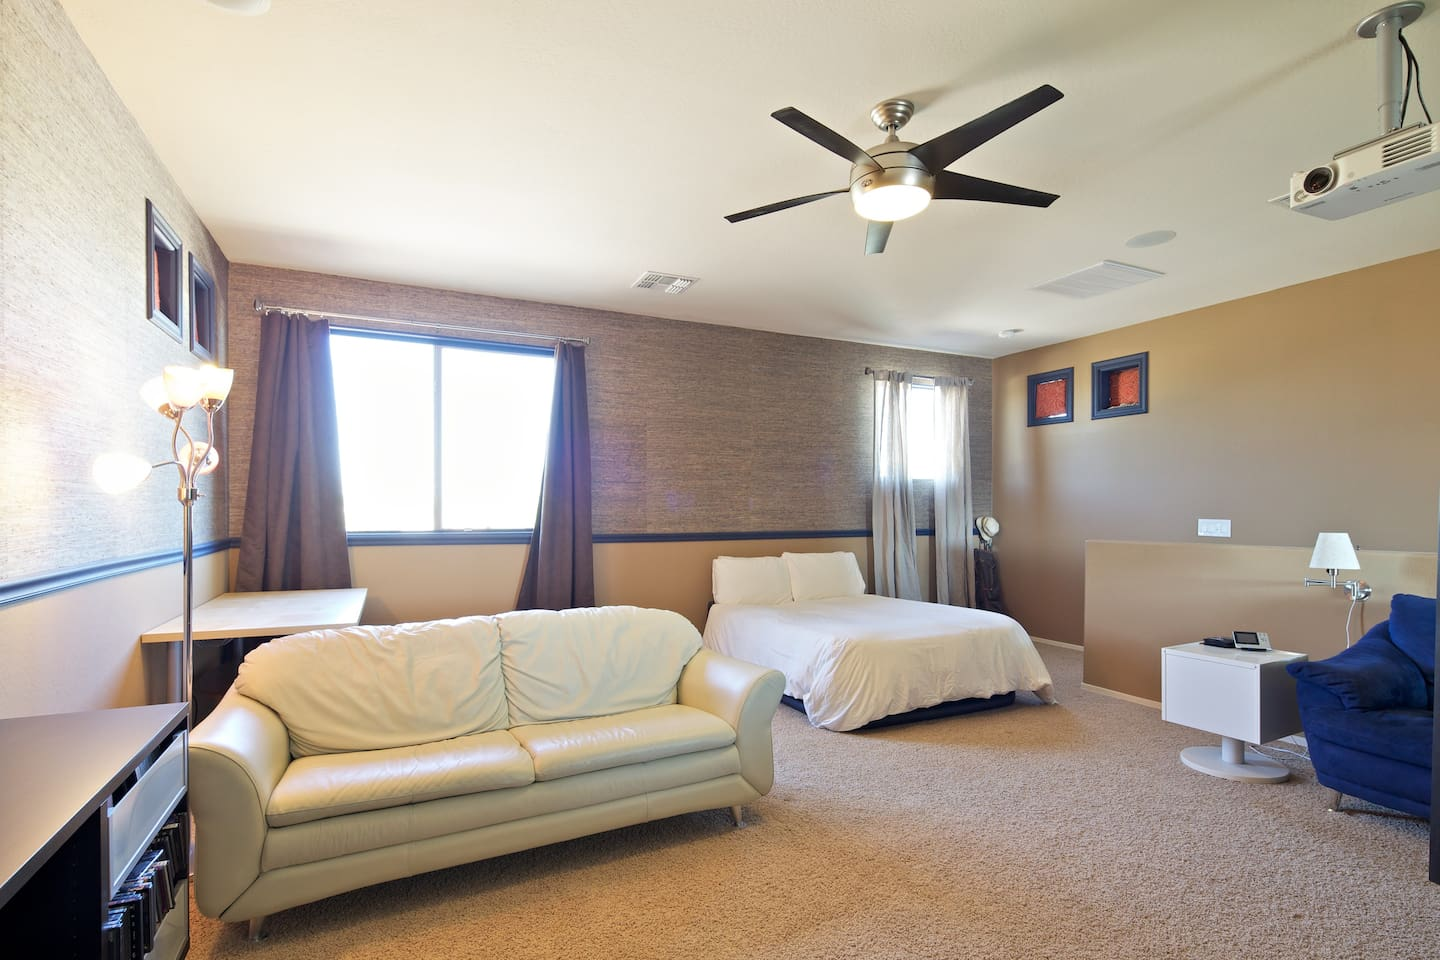 Large and Comfortable Open Space